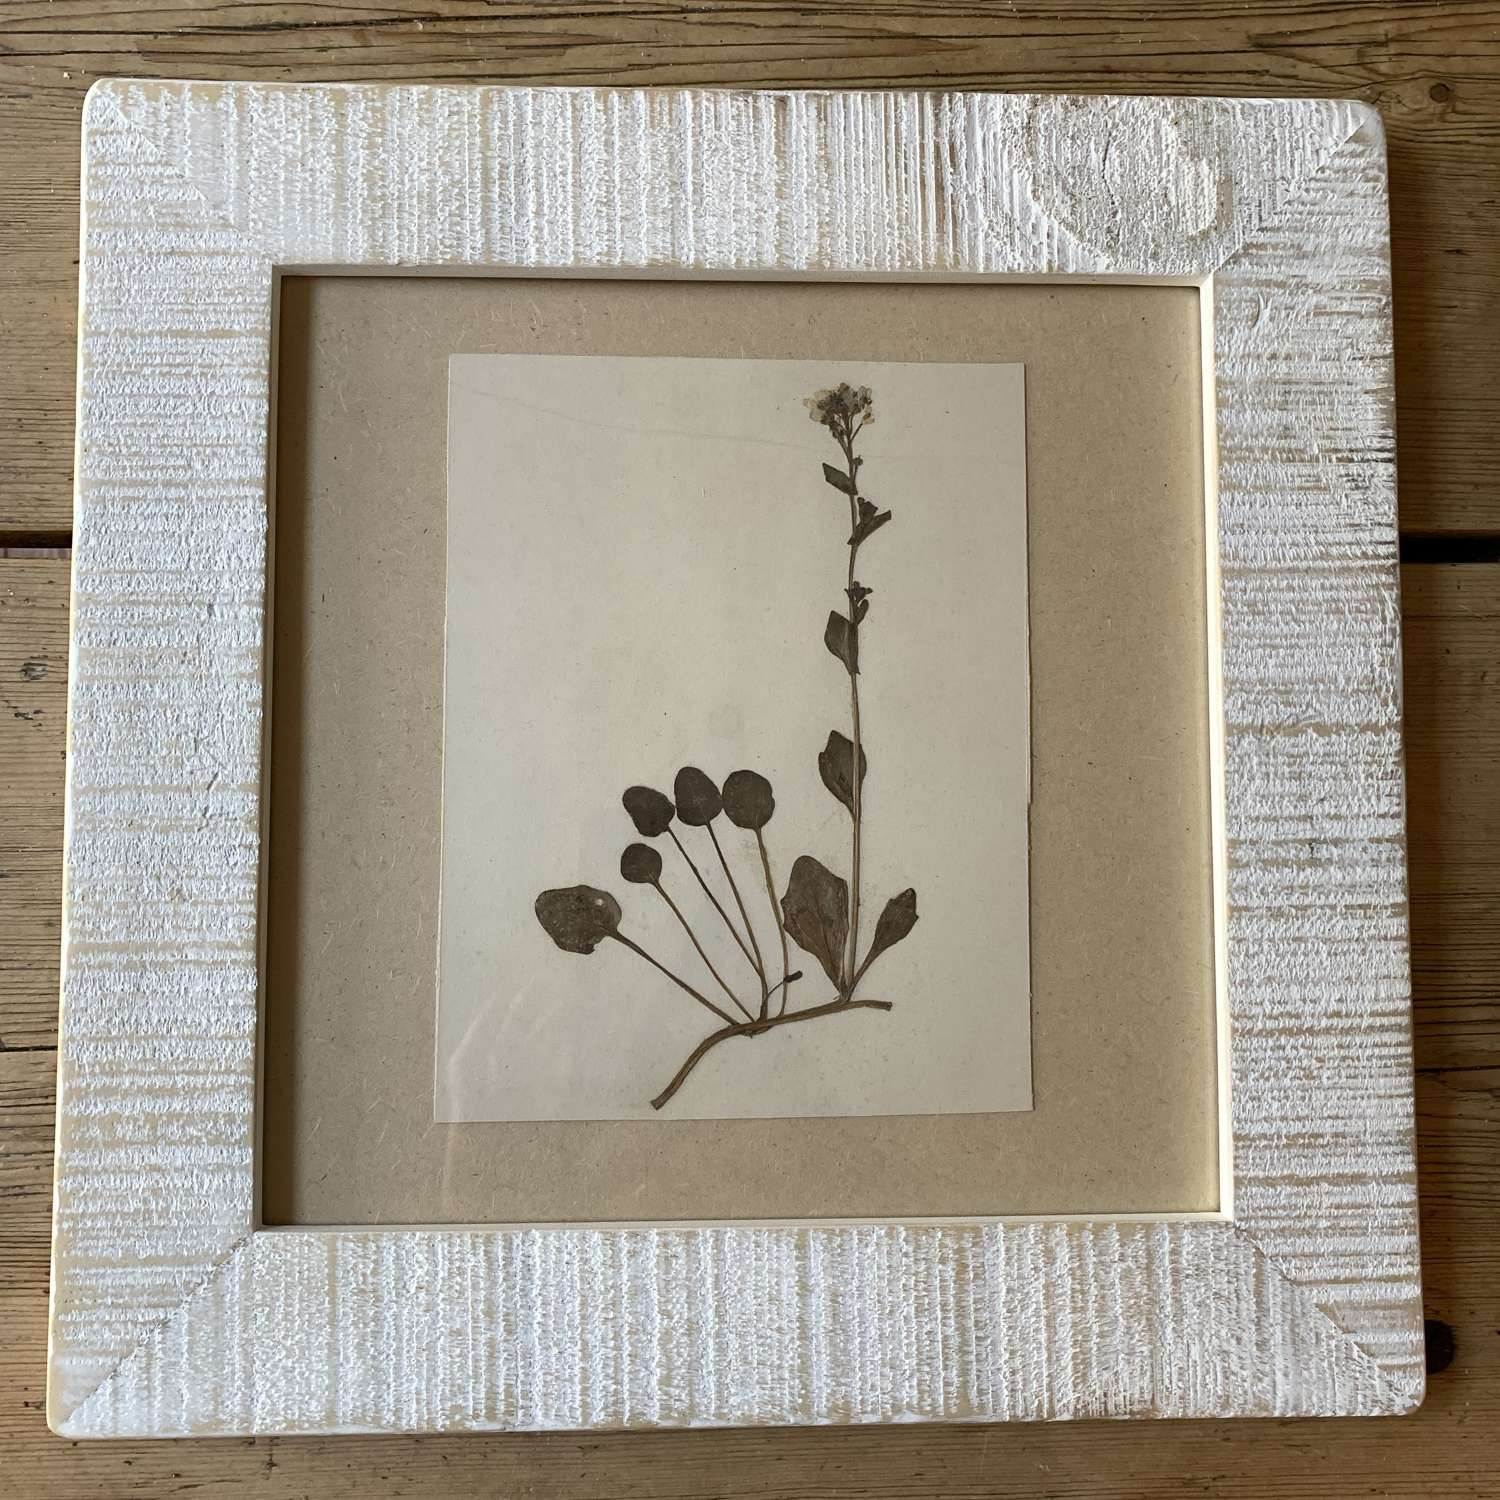 Antique herbiere in reclaimed wooden frame